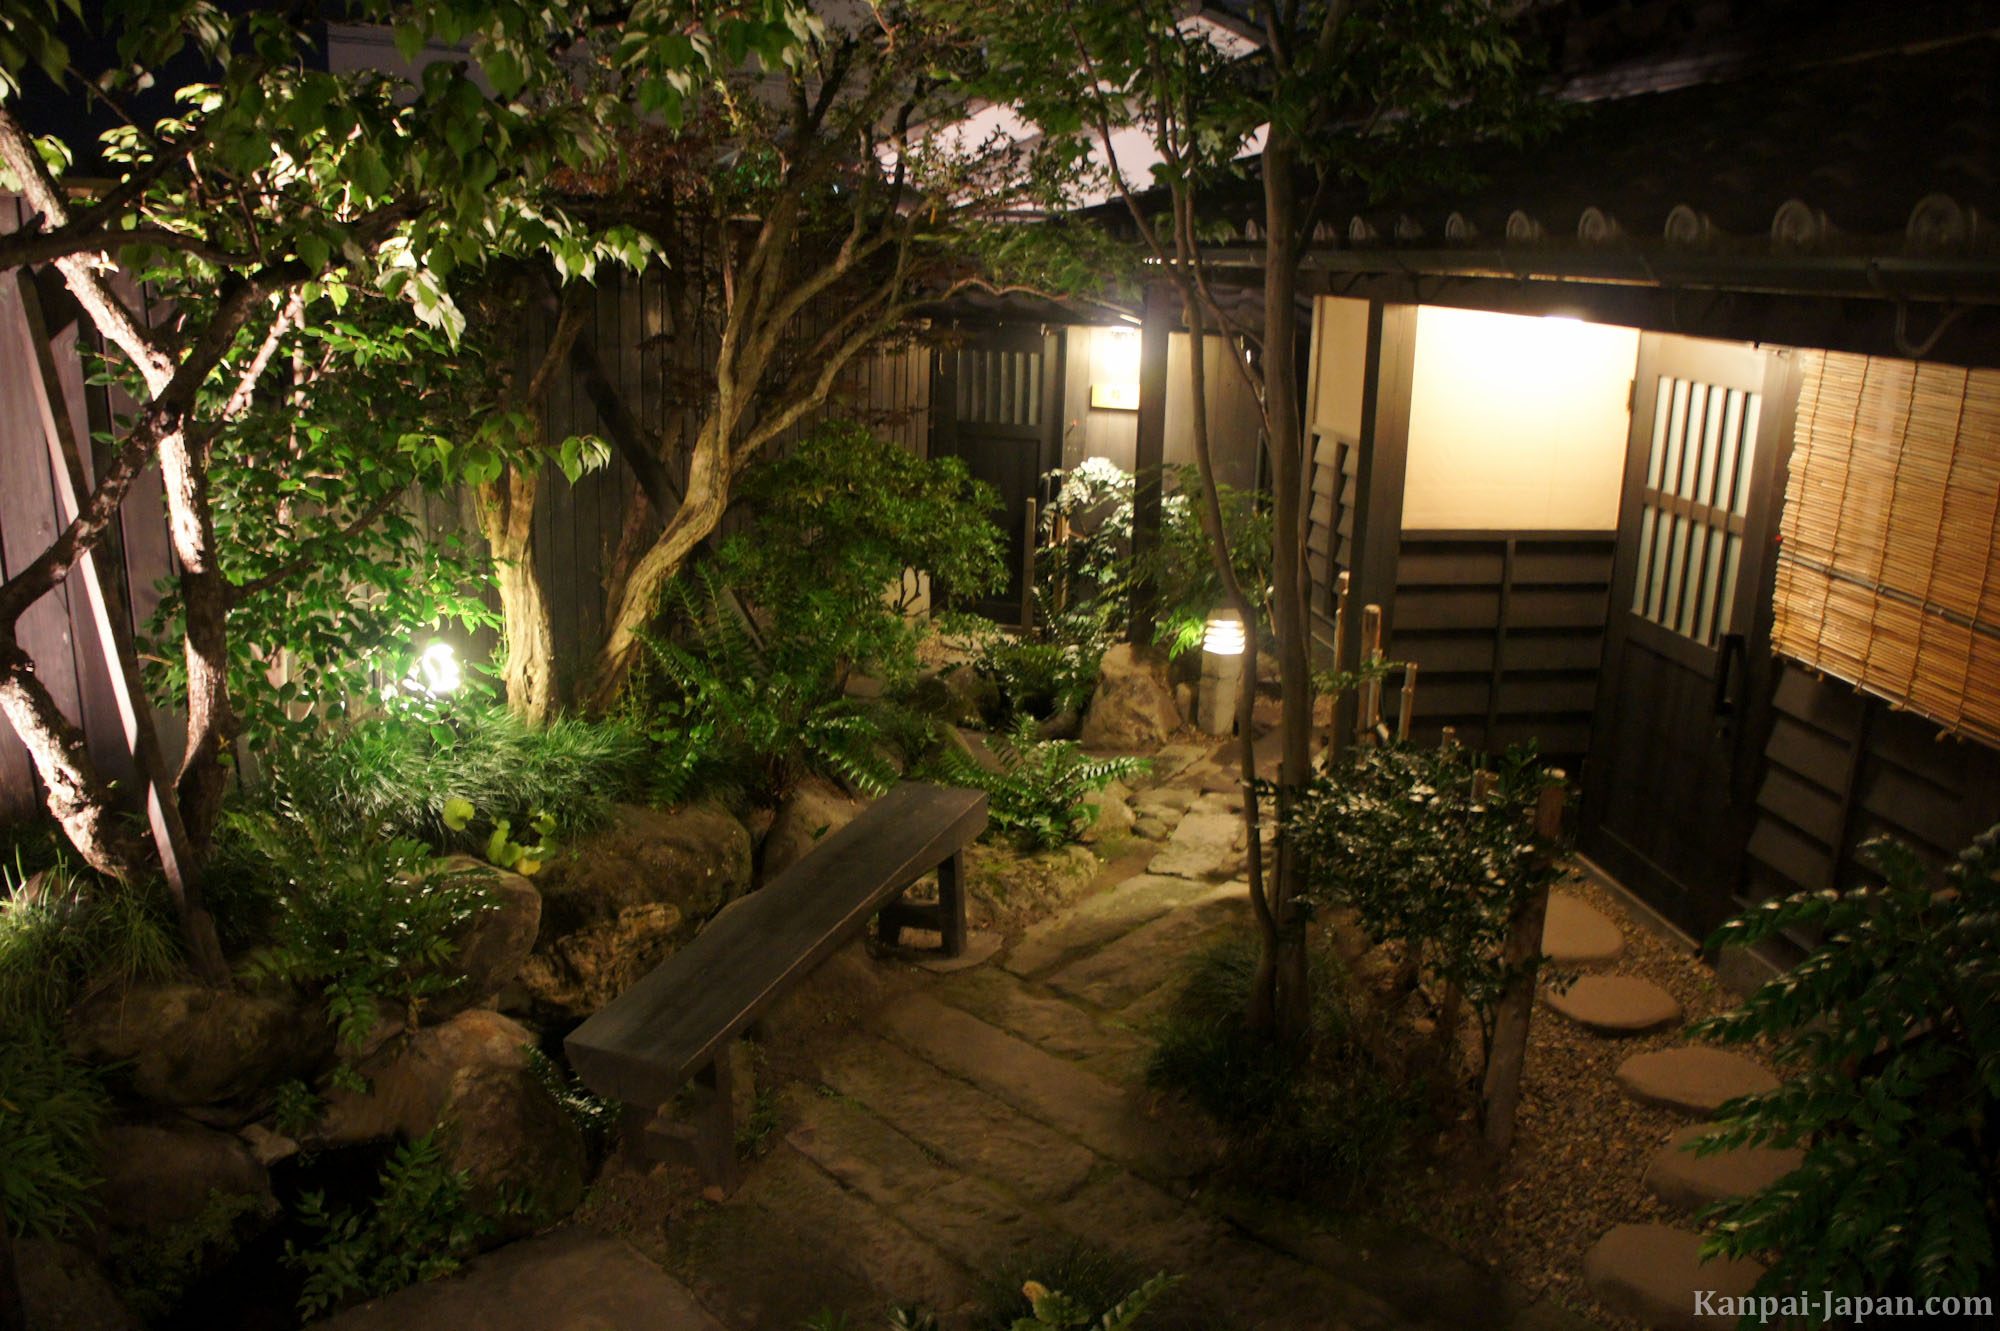 Hyotan Onsen The Private Mixed Hot Springs